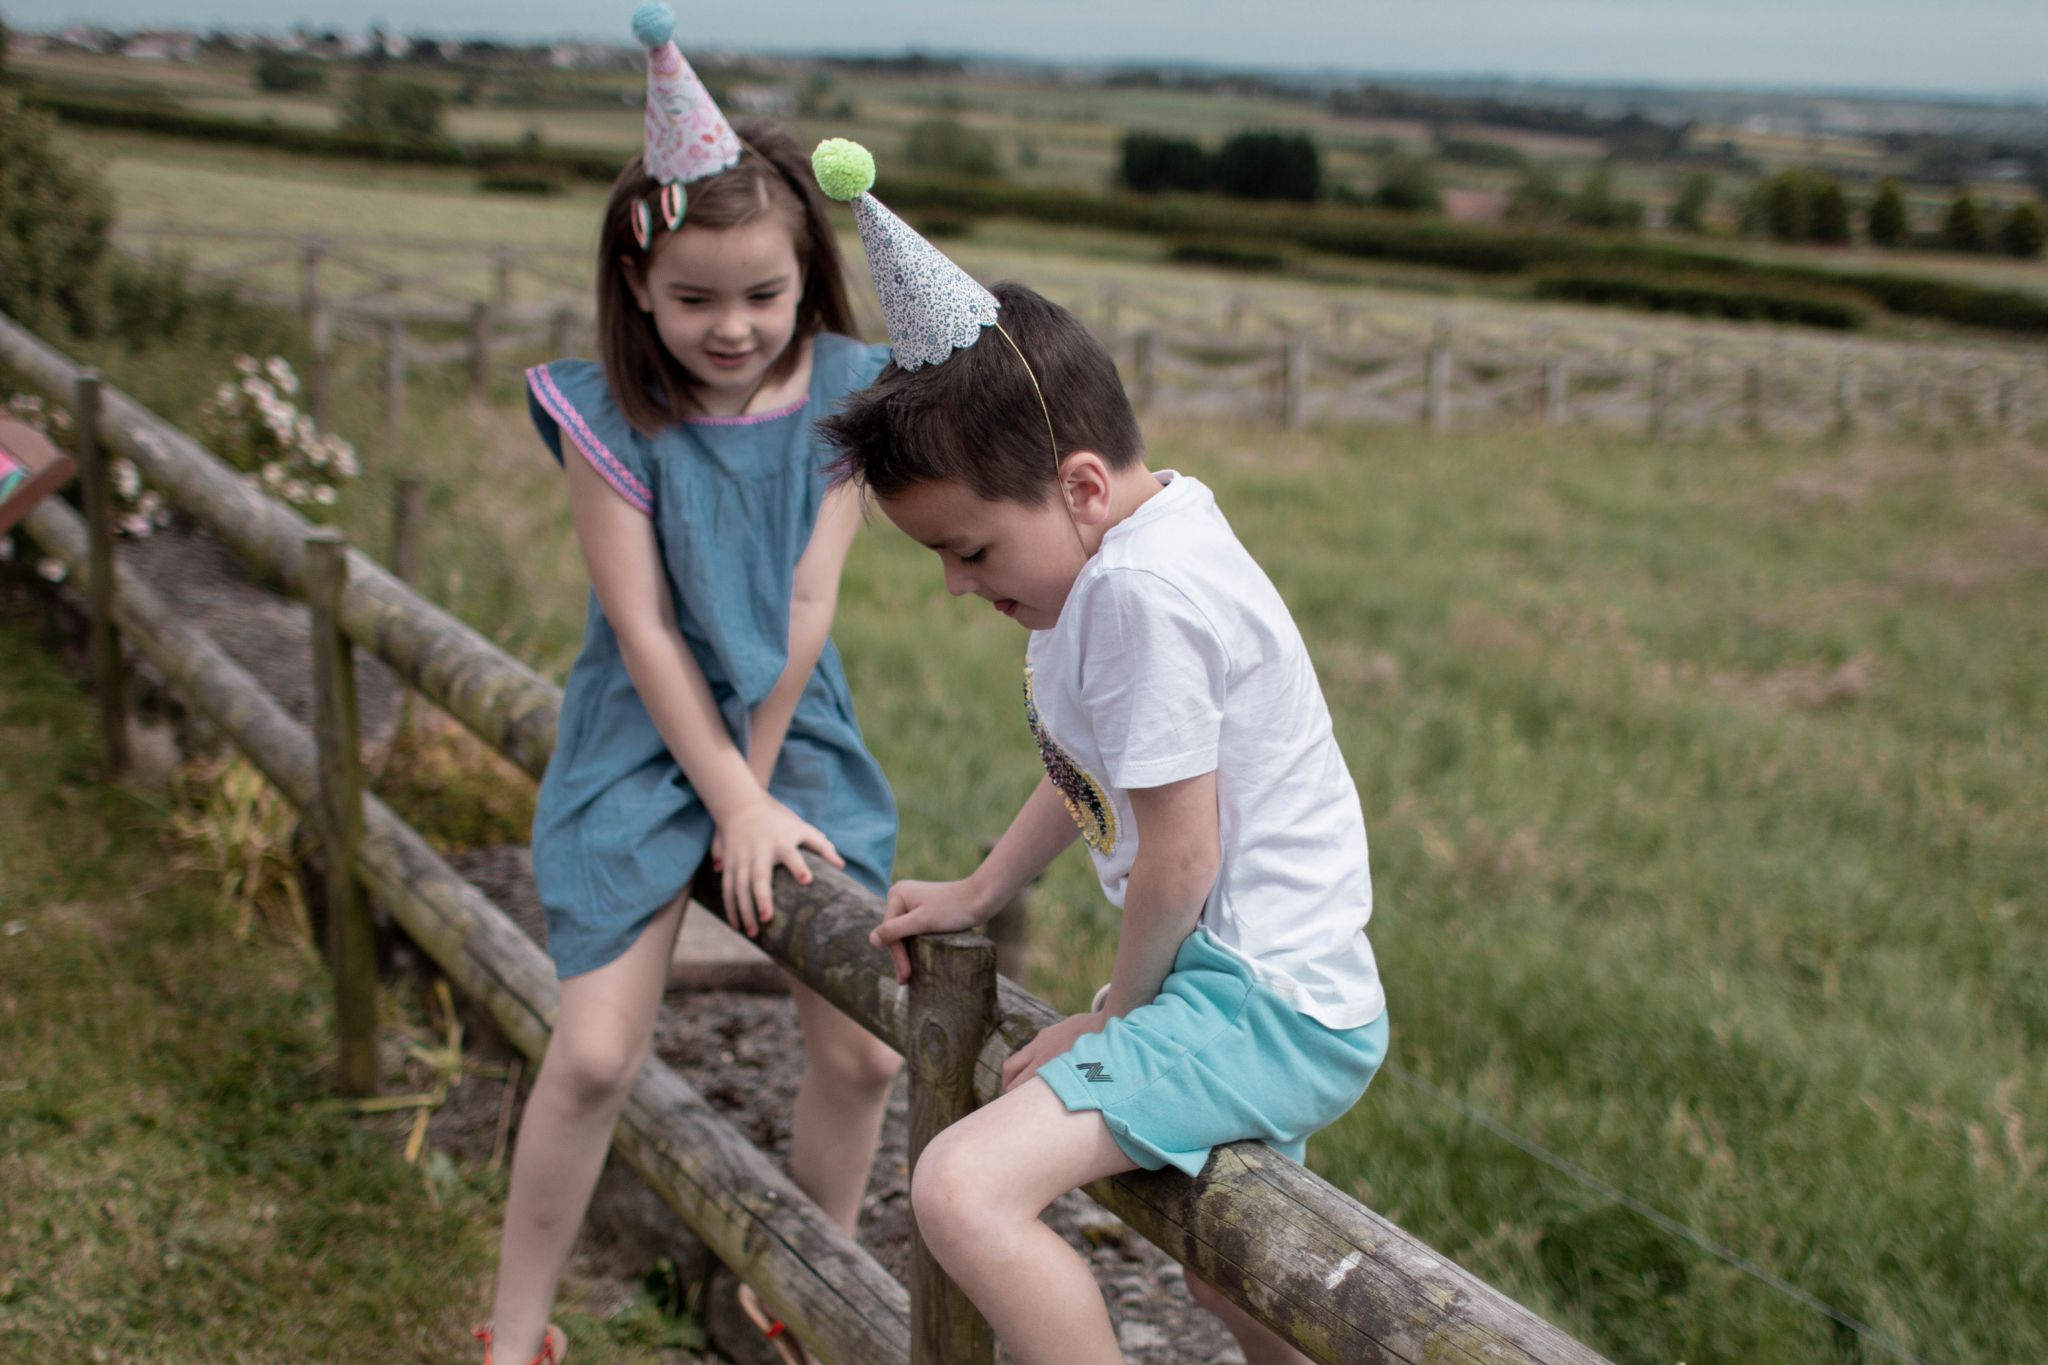 hannah layford child photography shoot portraits birthday party twins fence playing